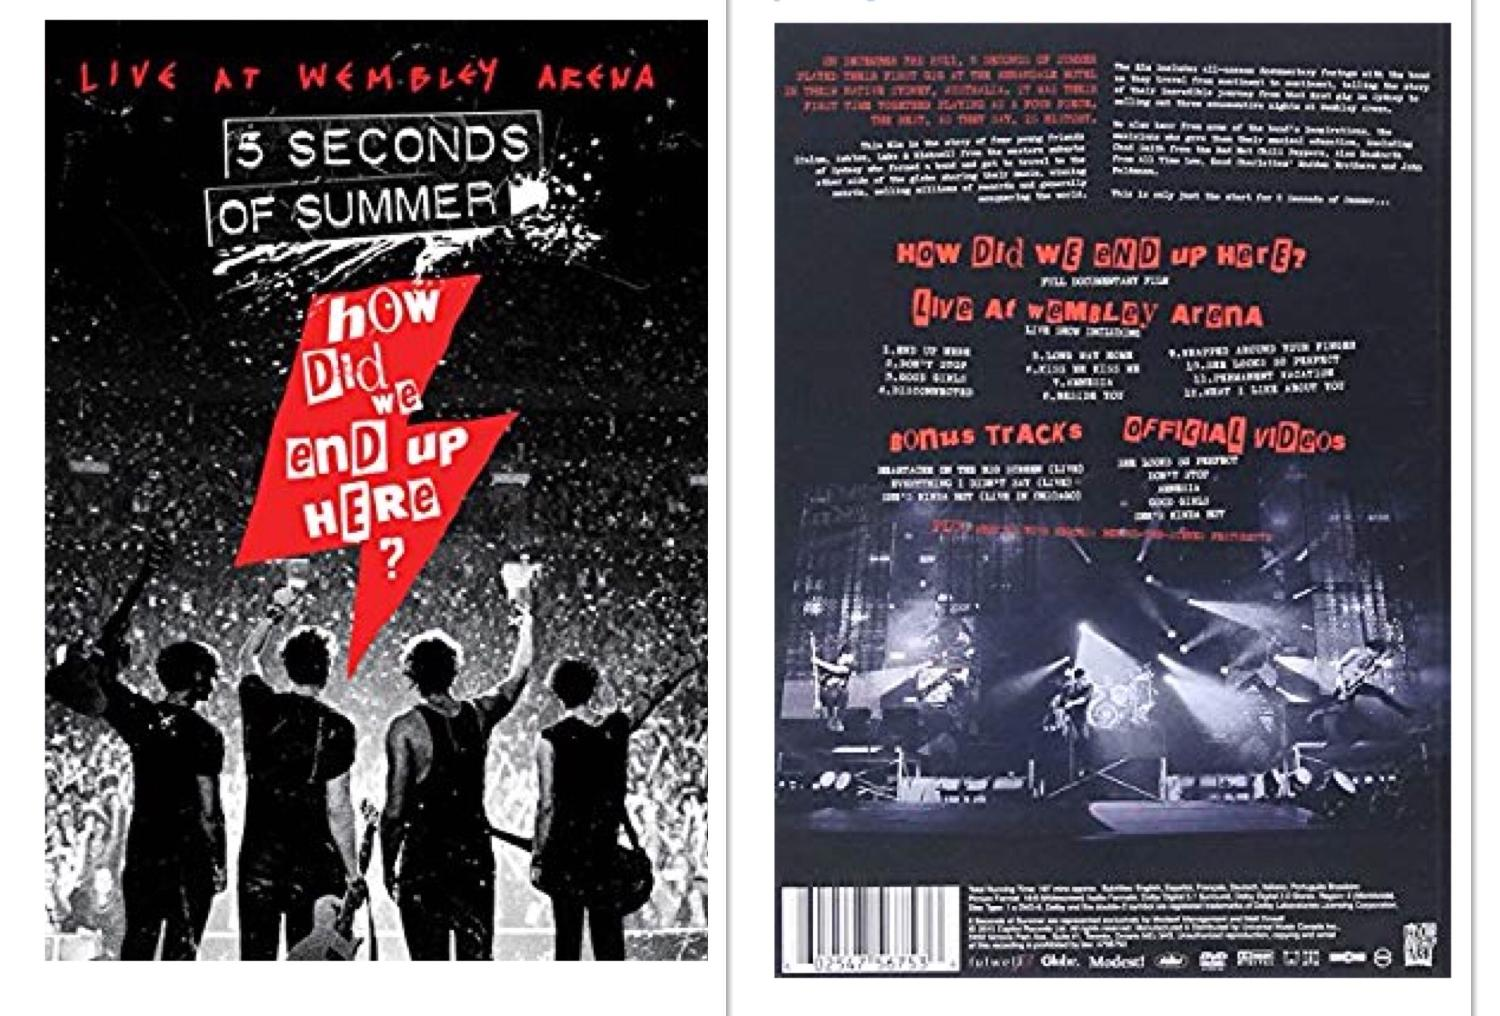 Best 5 Seconds Of Summer How Did We End Up Here Dvd For Sale In White House Tennessee For 2021